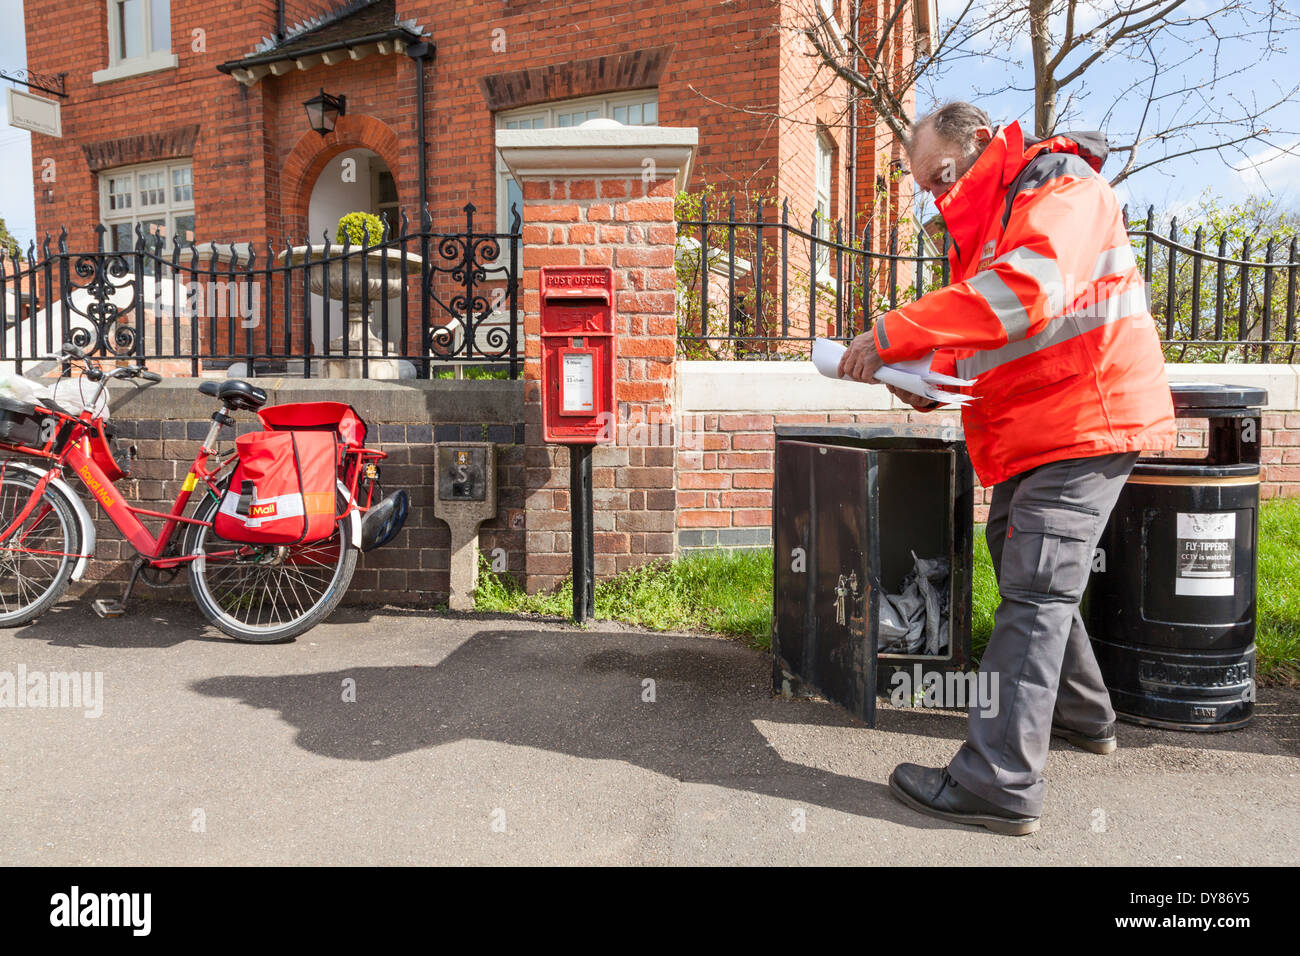 UK postman on his round in a rural area, collecting and delivering mail from a box outside the Old Post Office, Plumtree, Nottinghamshire, England, UK - Stock Image